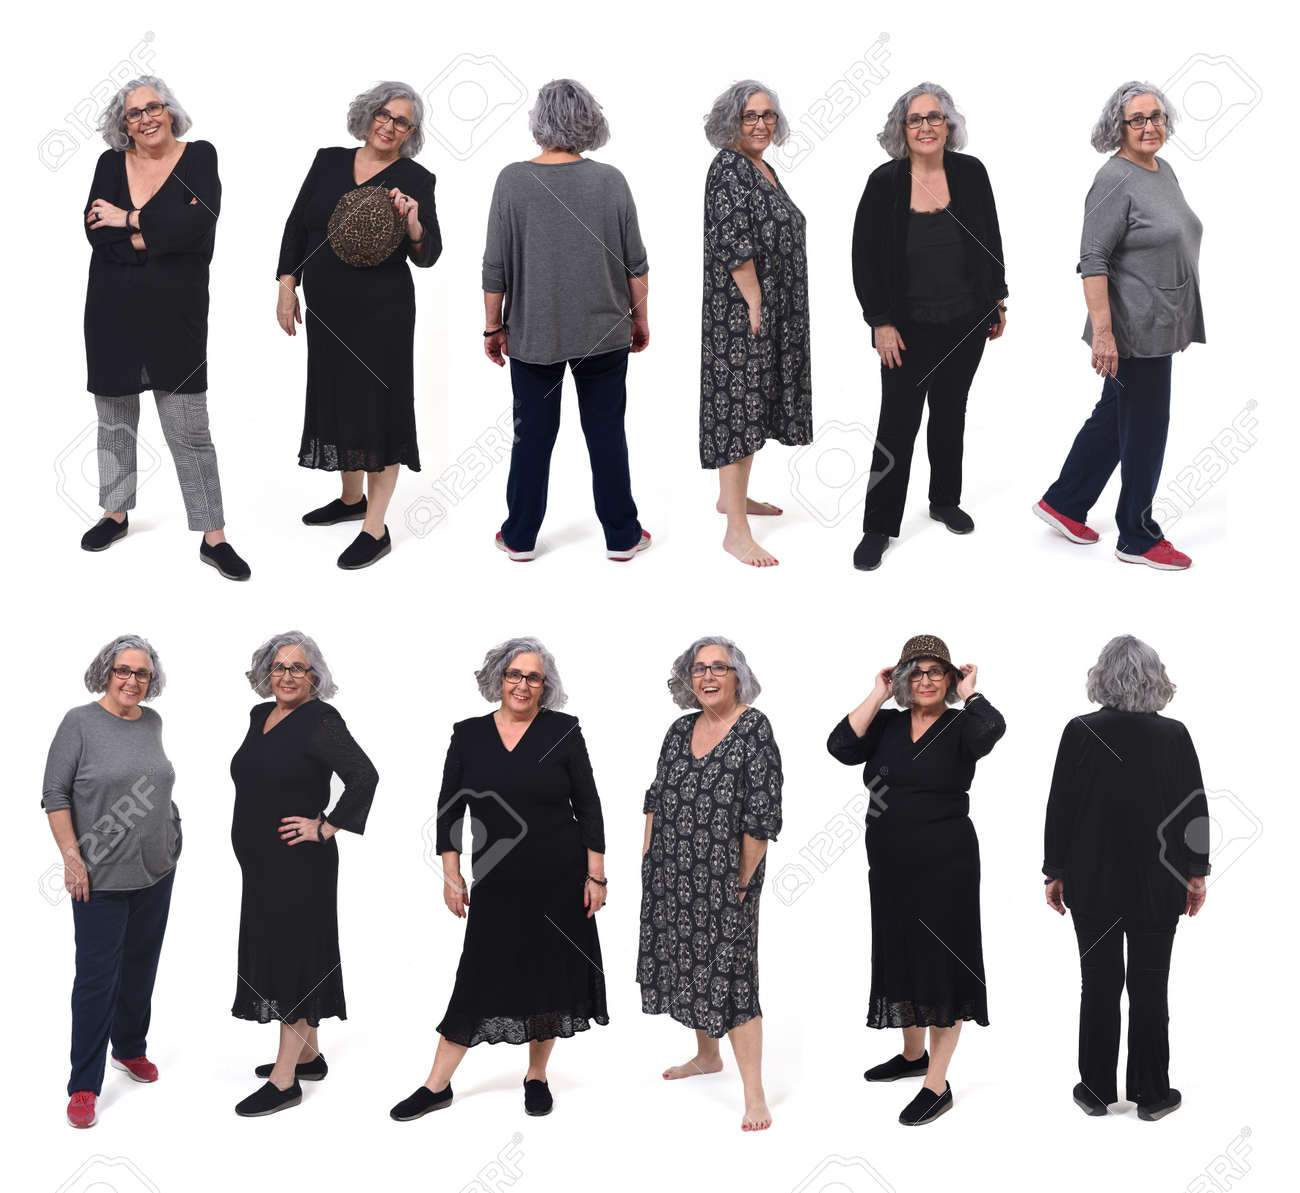 the same woman with different outfits on white background - 166912237